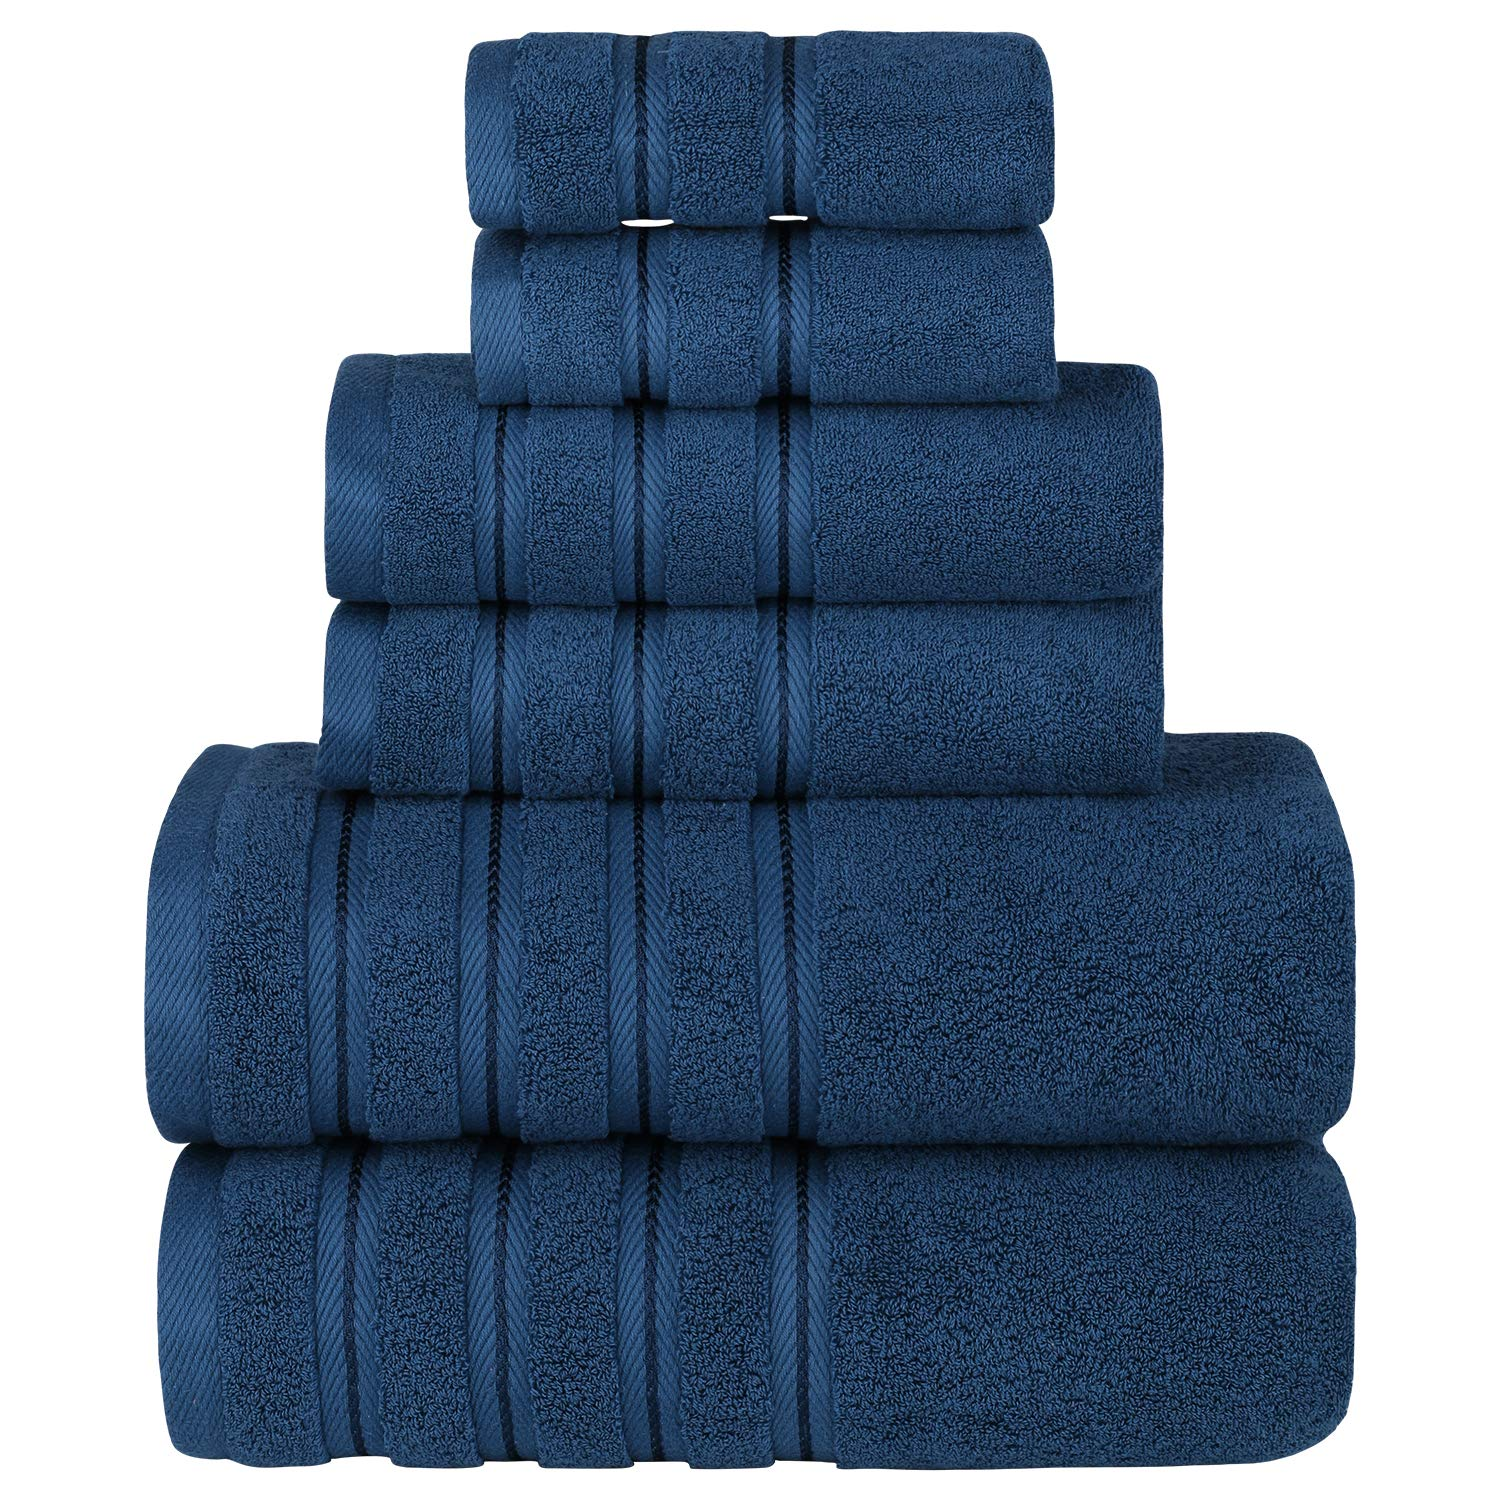 Sofi Towel 6 Piece towel set 100% Turkish Cotton Premium Luxury Hotel & Spa Quality 2 Bath Towels 2 Hand Towels 2 Wash Cloths Softness Highly Absorbent and Eco-Friendly Navy Blue